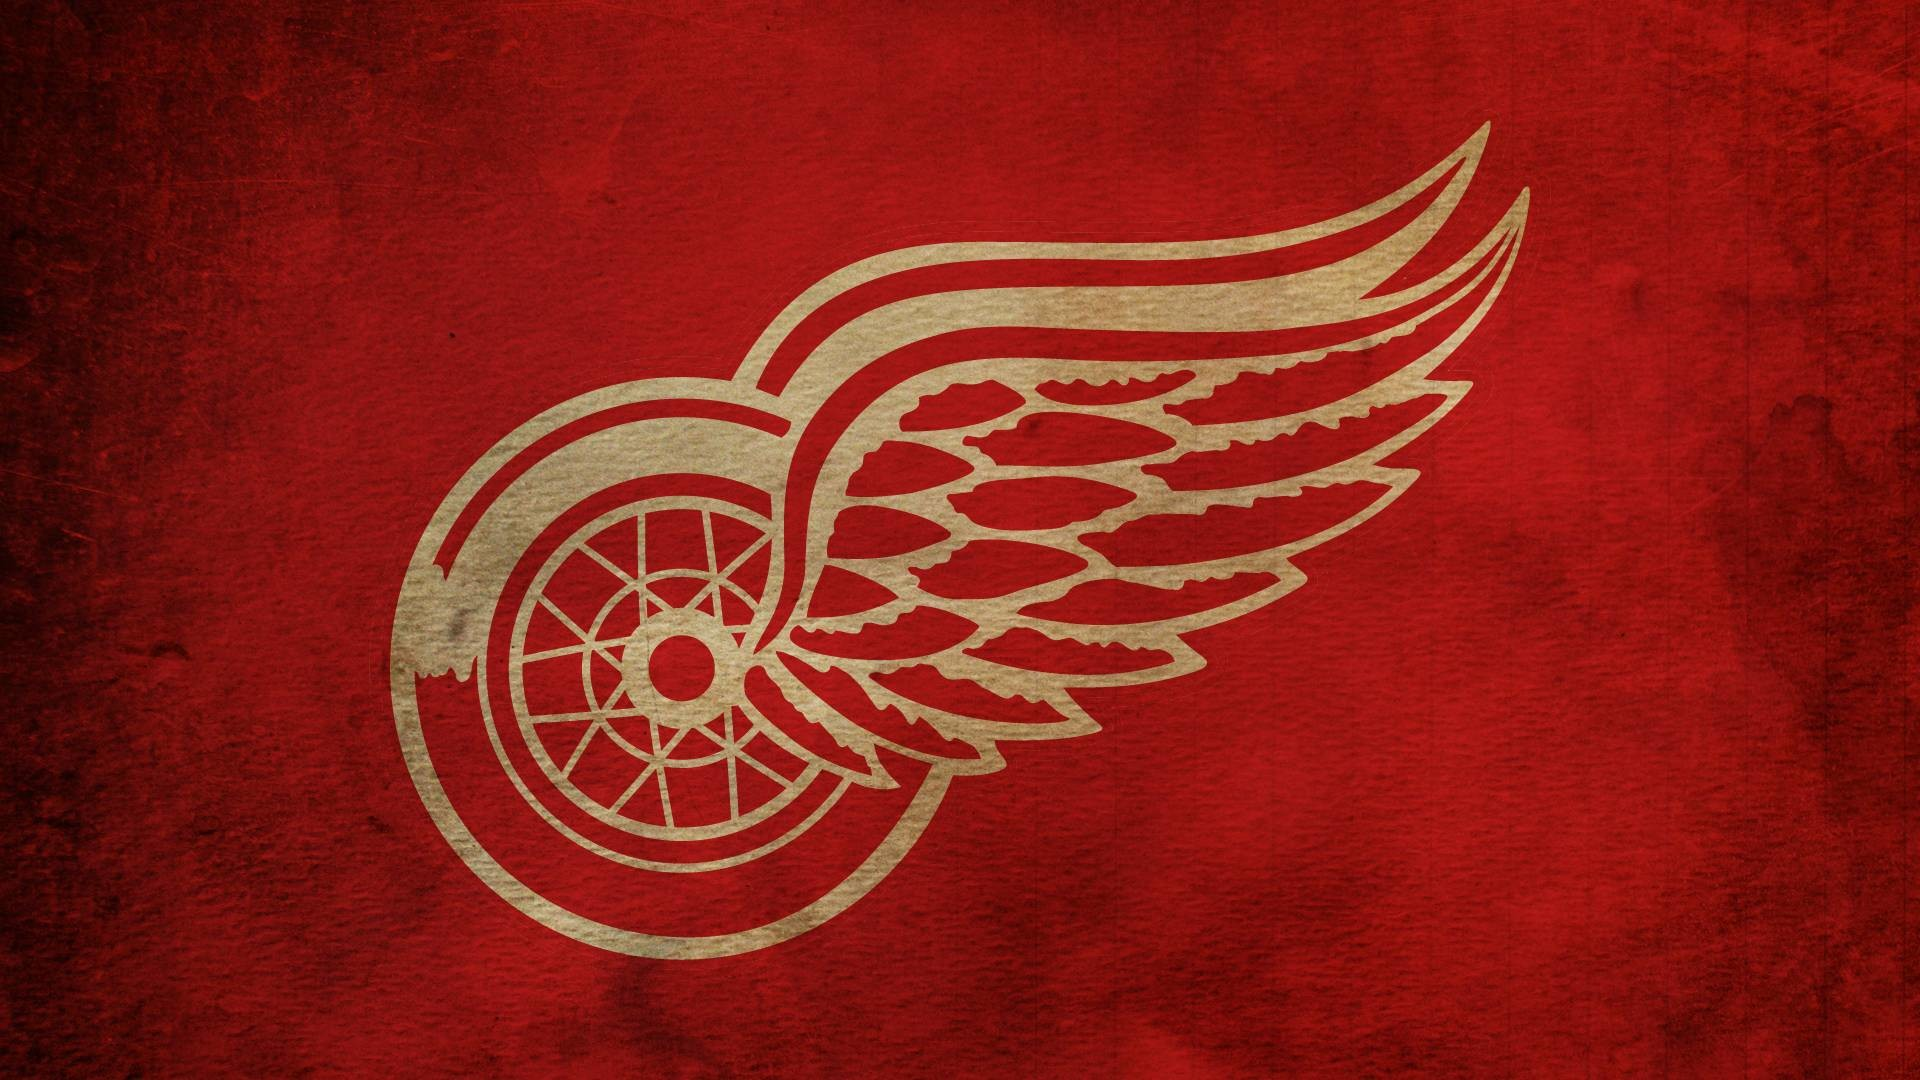 Detroit Red Wings wallpapers   Detroit Red Wings background – Page 2